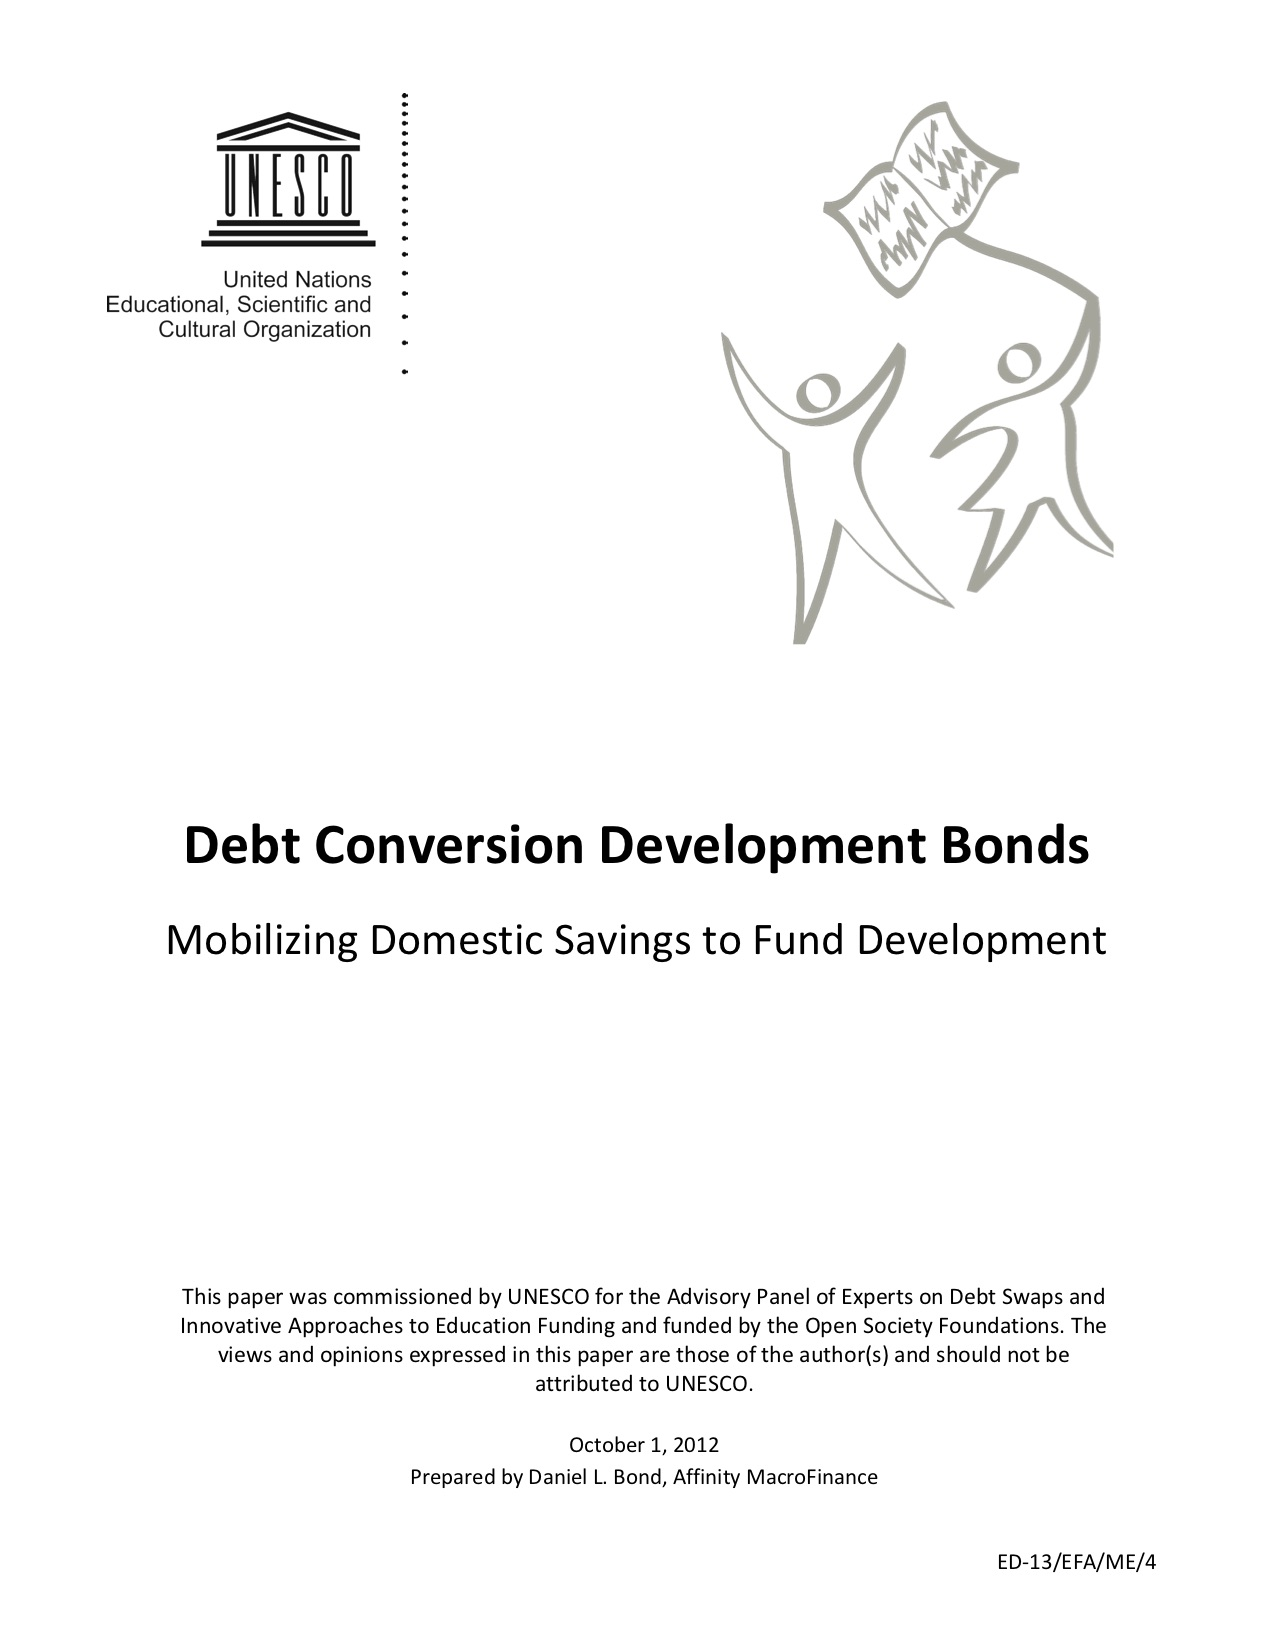 Debt Conversion Development Bonds: Mobilizing Domestic Savings to Fund Development